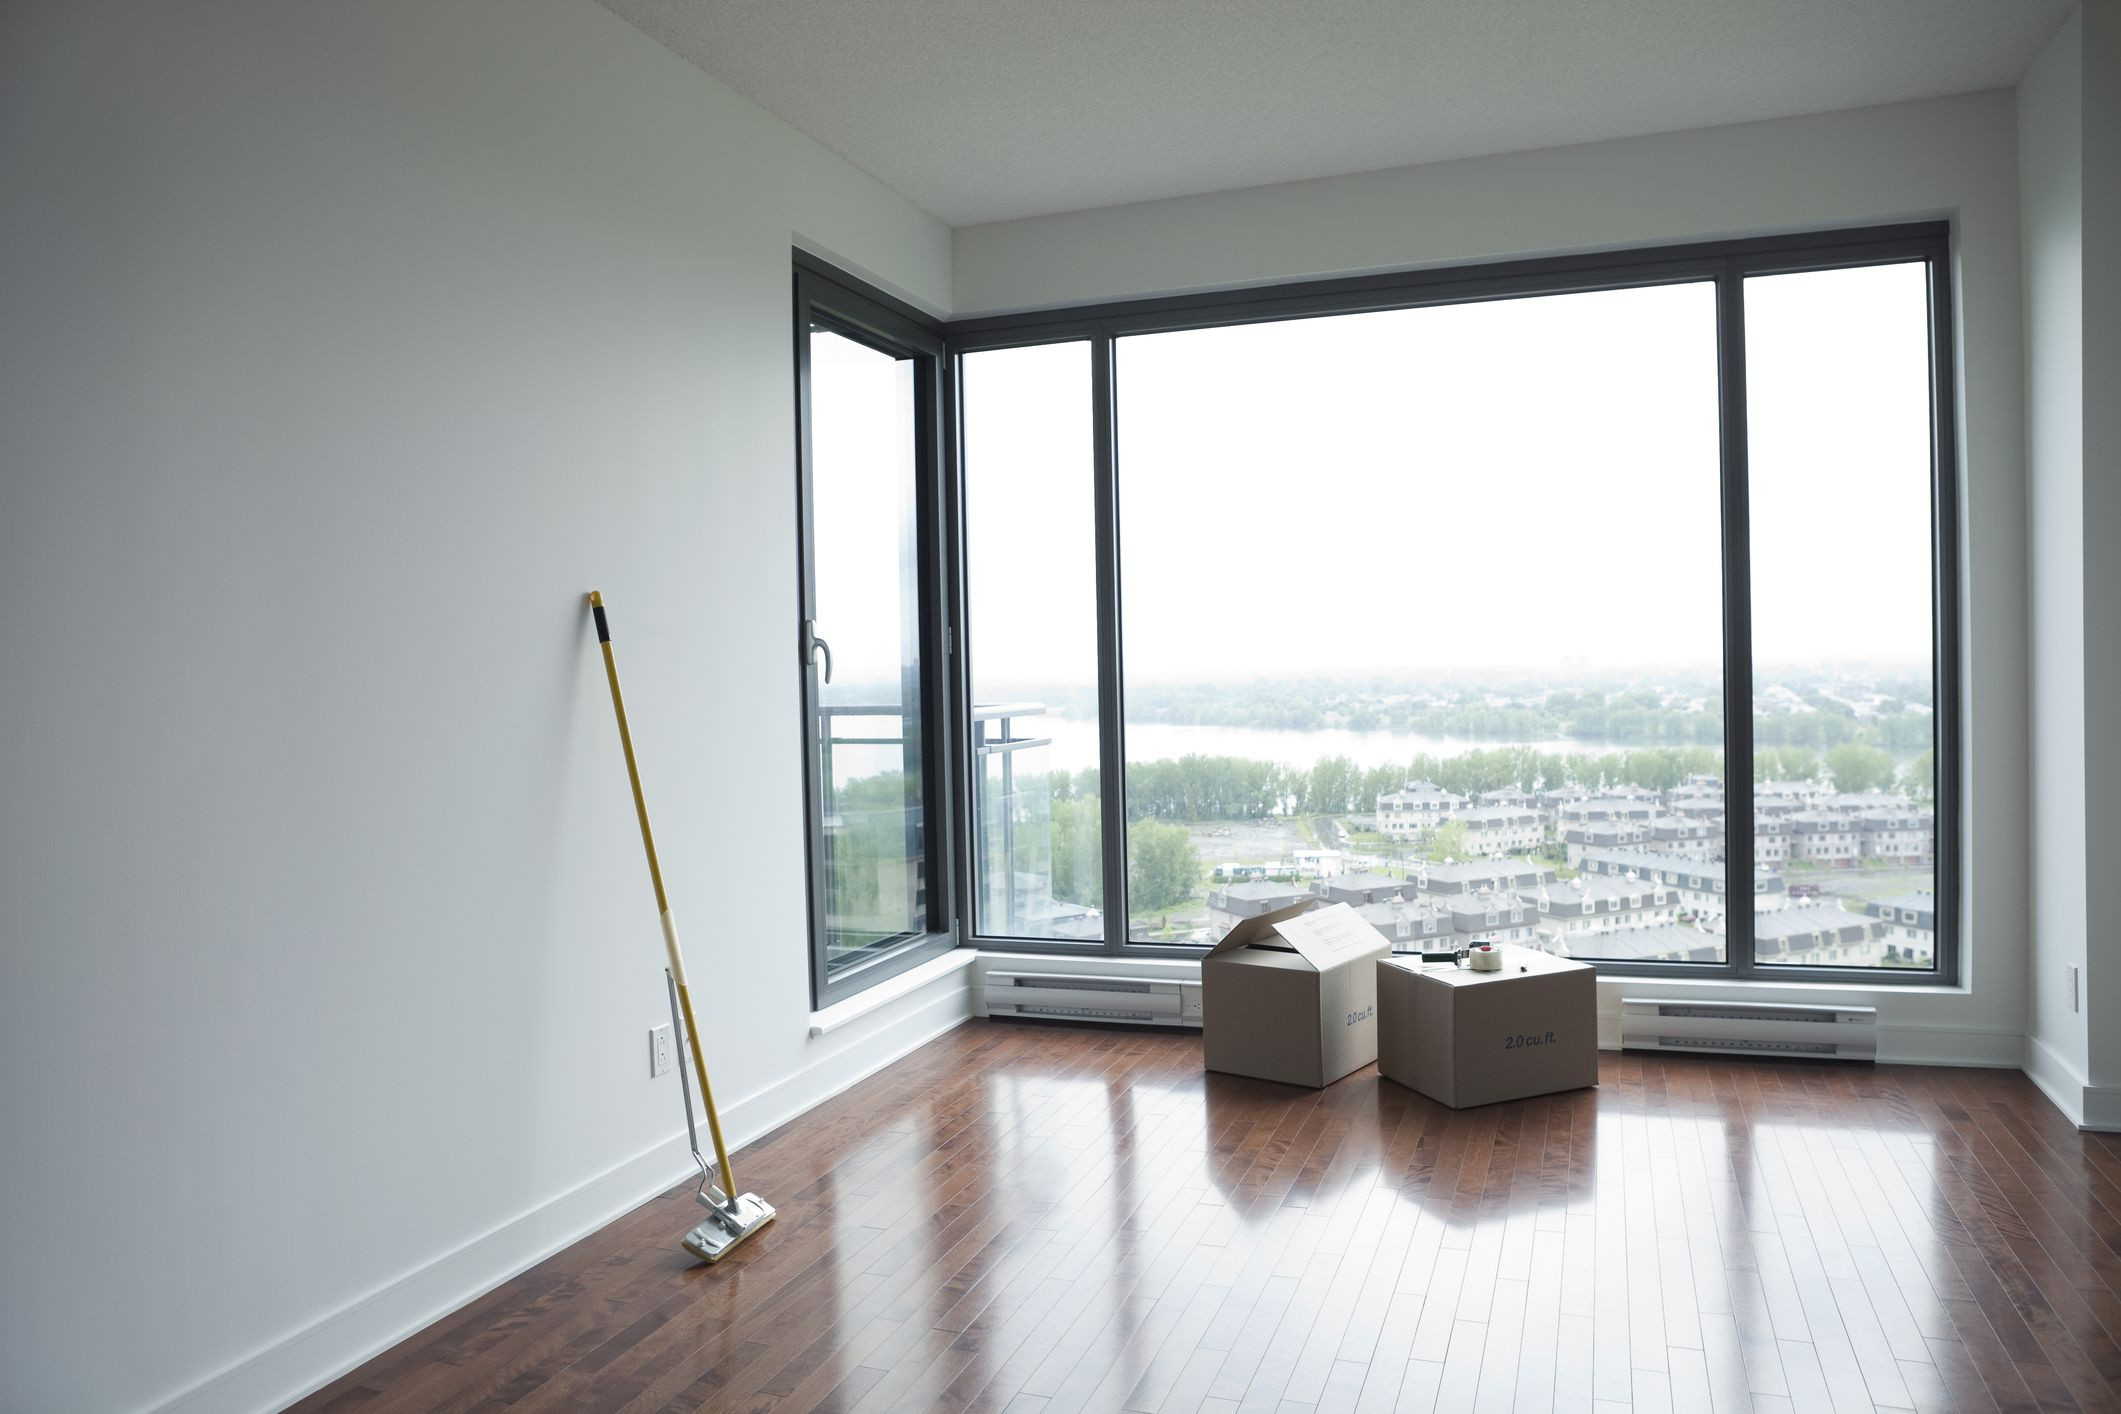 cleaning engineered hardwood floors with vinegar and water of the best cleaner for laminate floors intended for clean laminate floor gettyimages 183408912 58925fff5f9b5874eeecb034